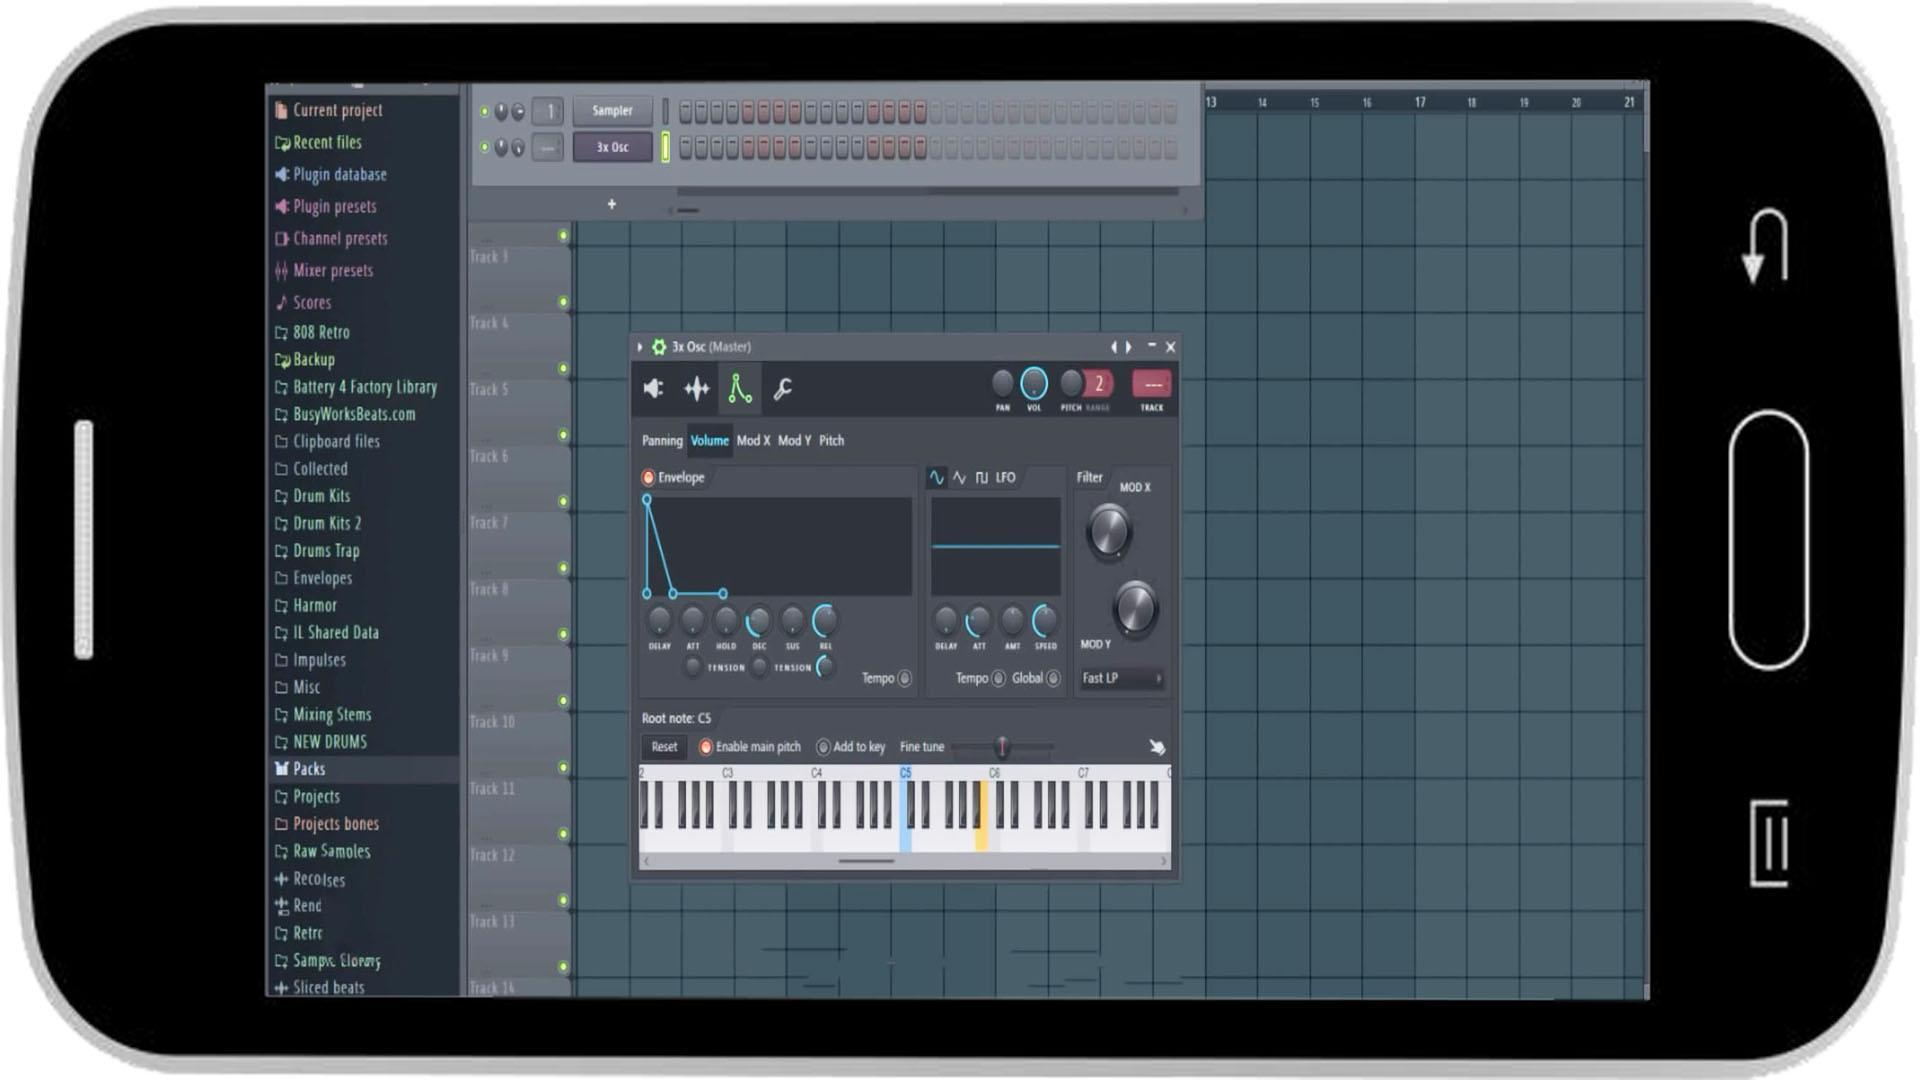 Download apk fl studio 12 for android free